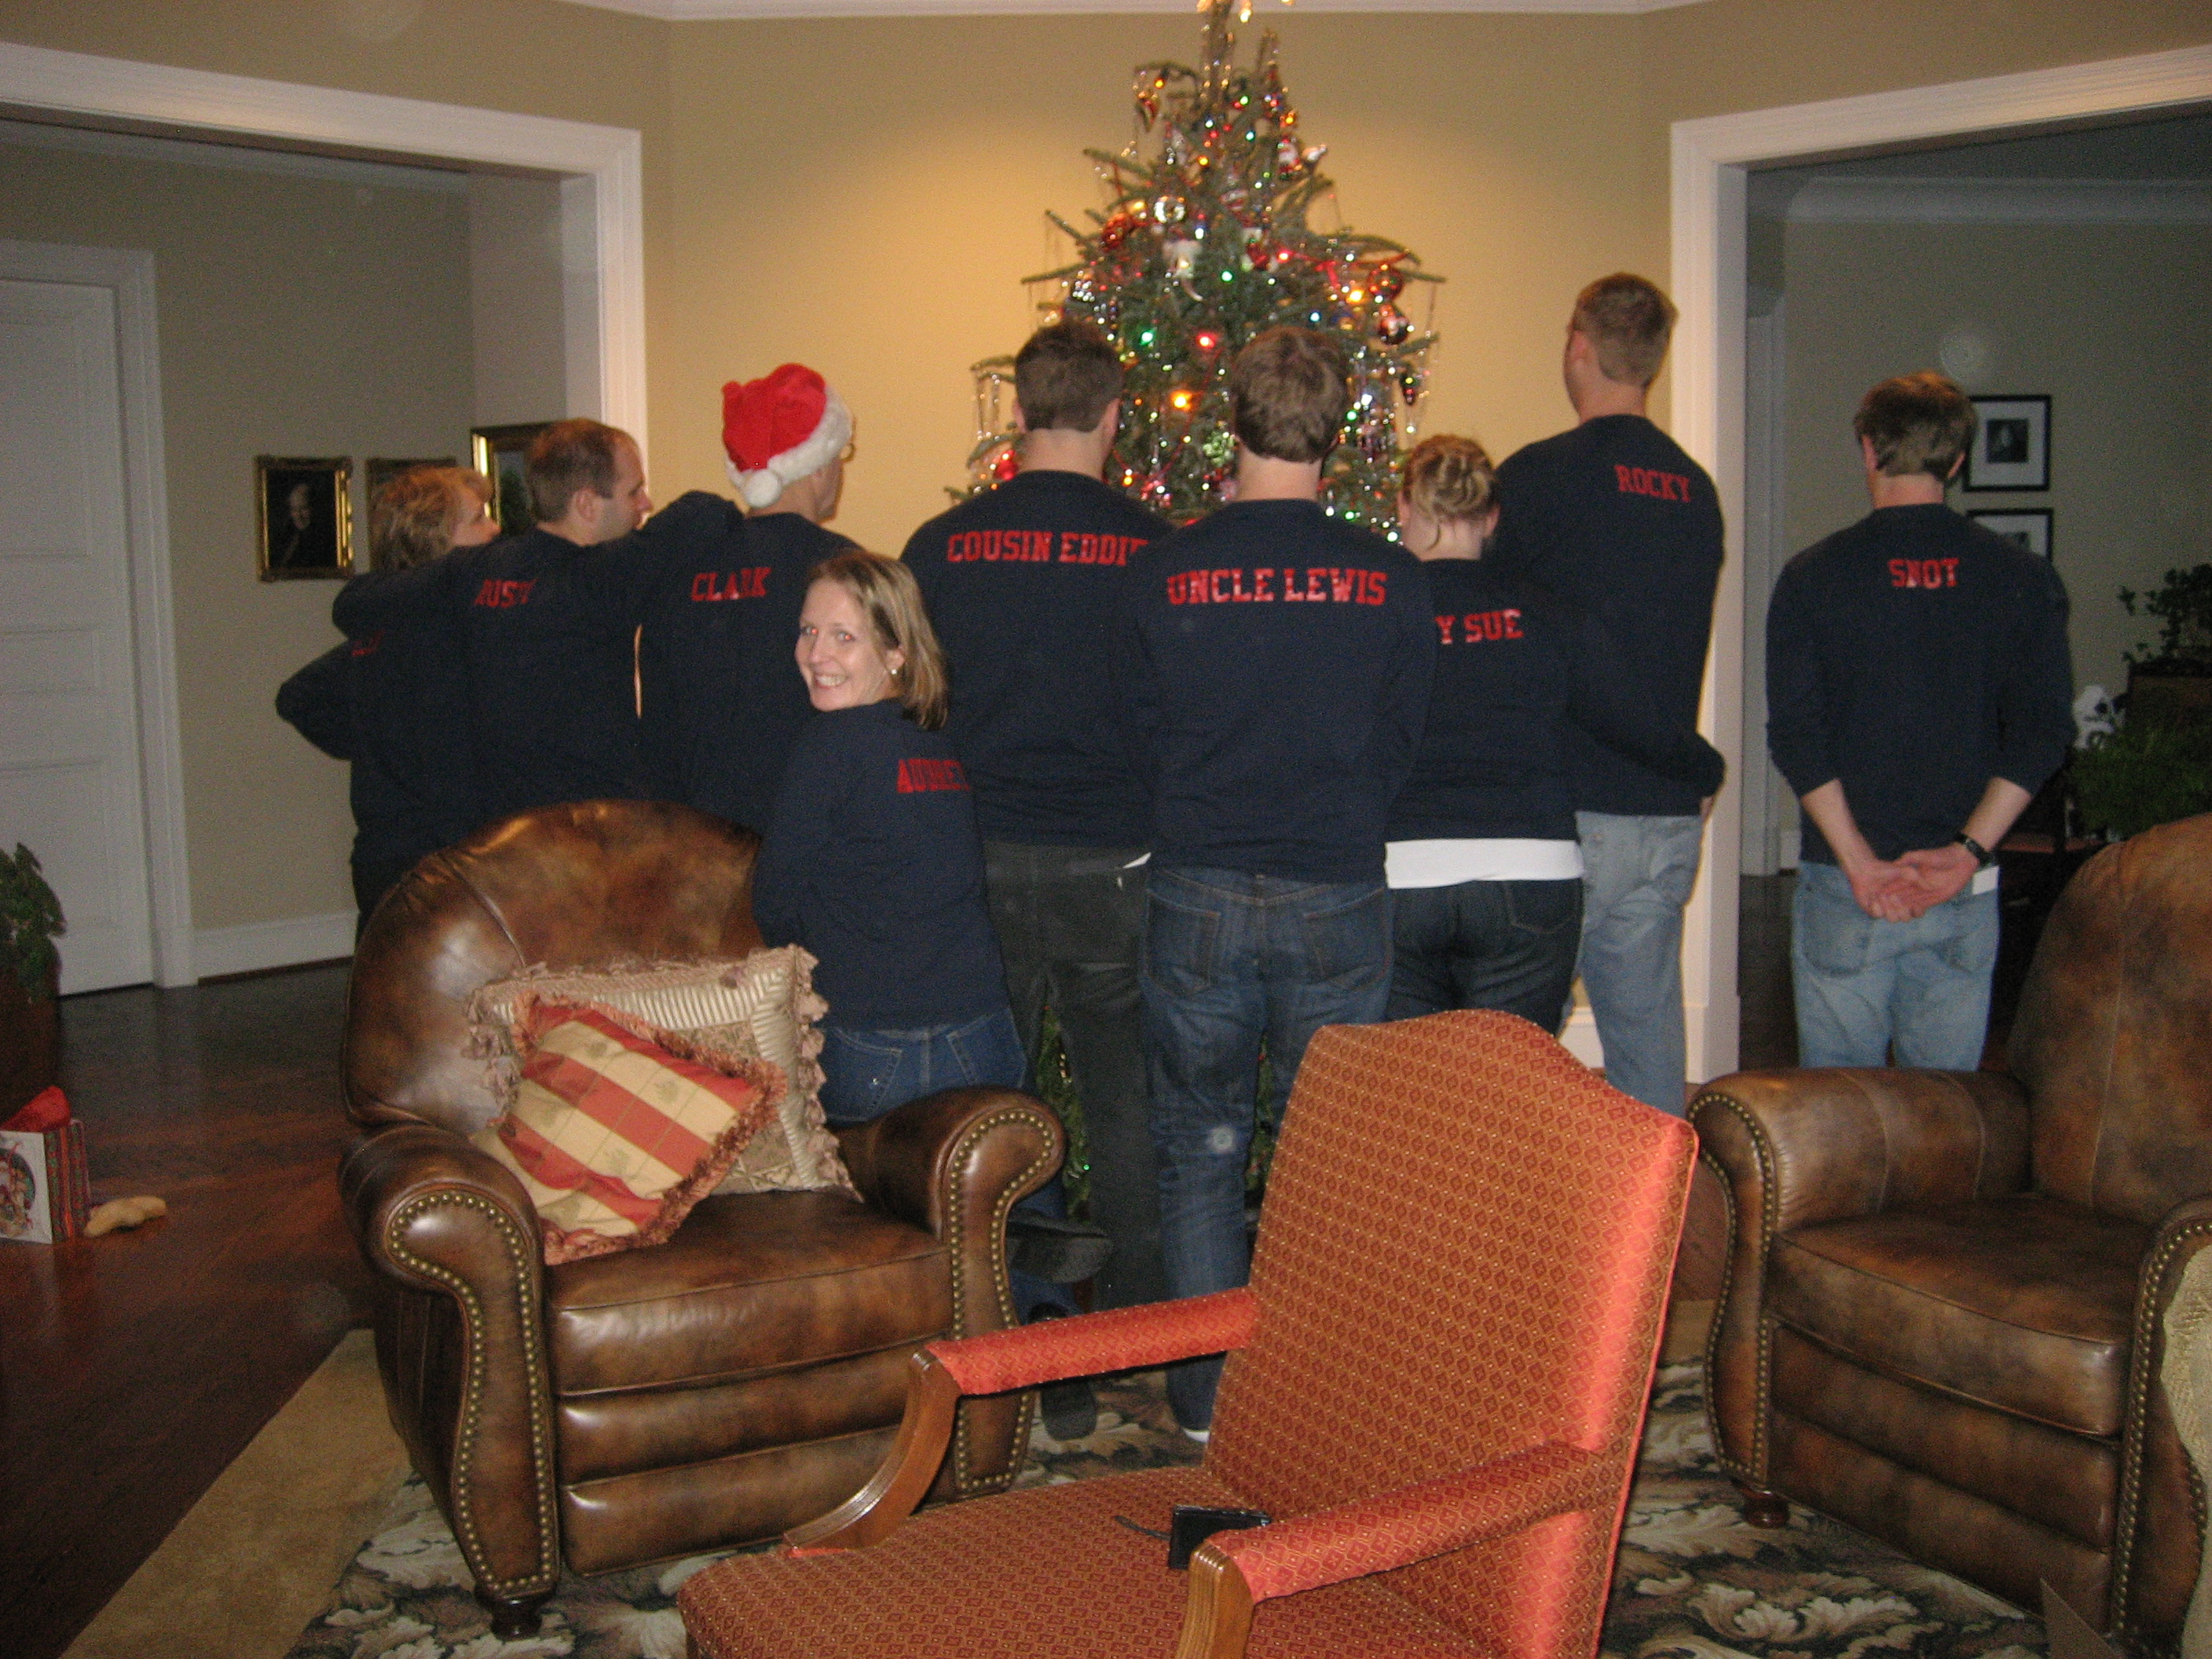 gris wallaces christmas vacation 2010 t shirt photo - National Lampoons Christmas Decorations